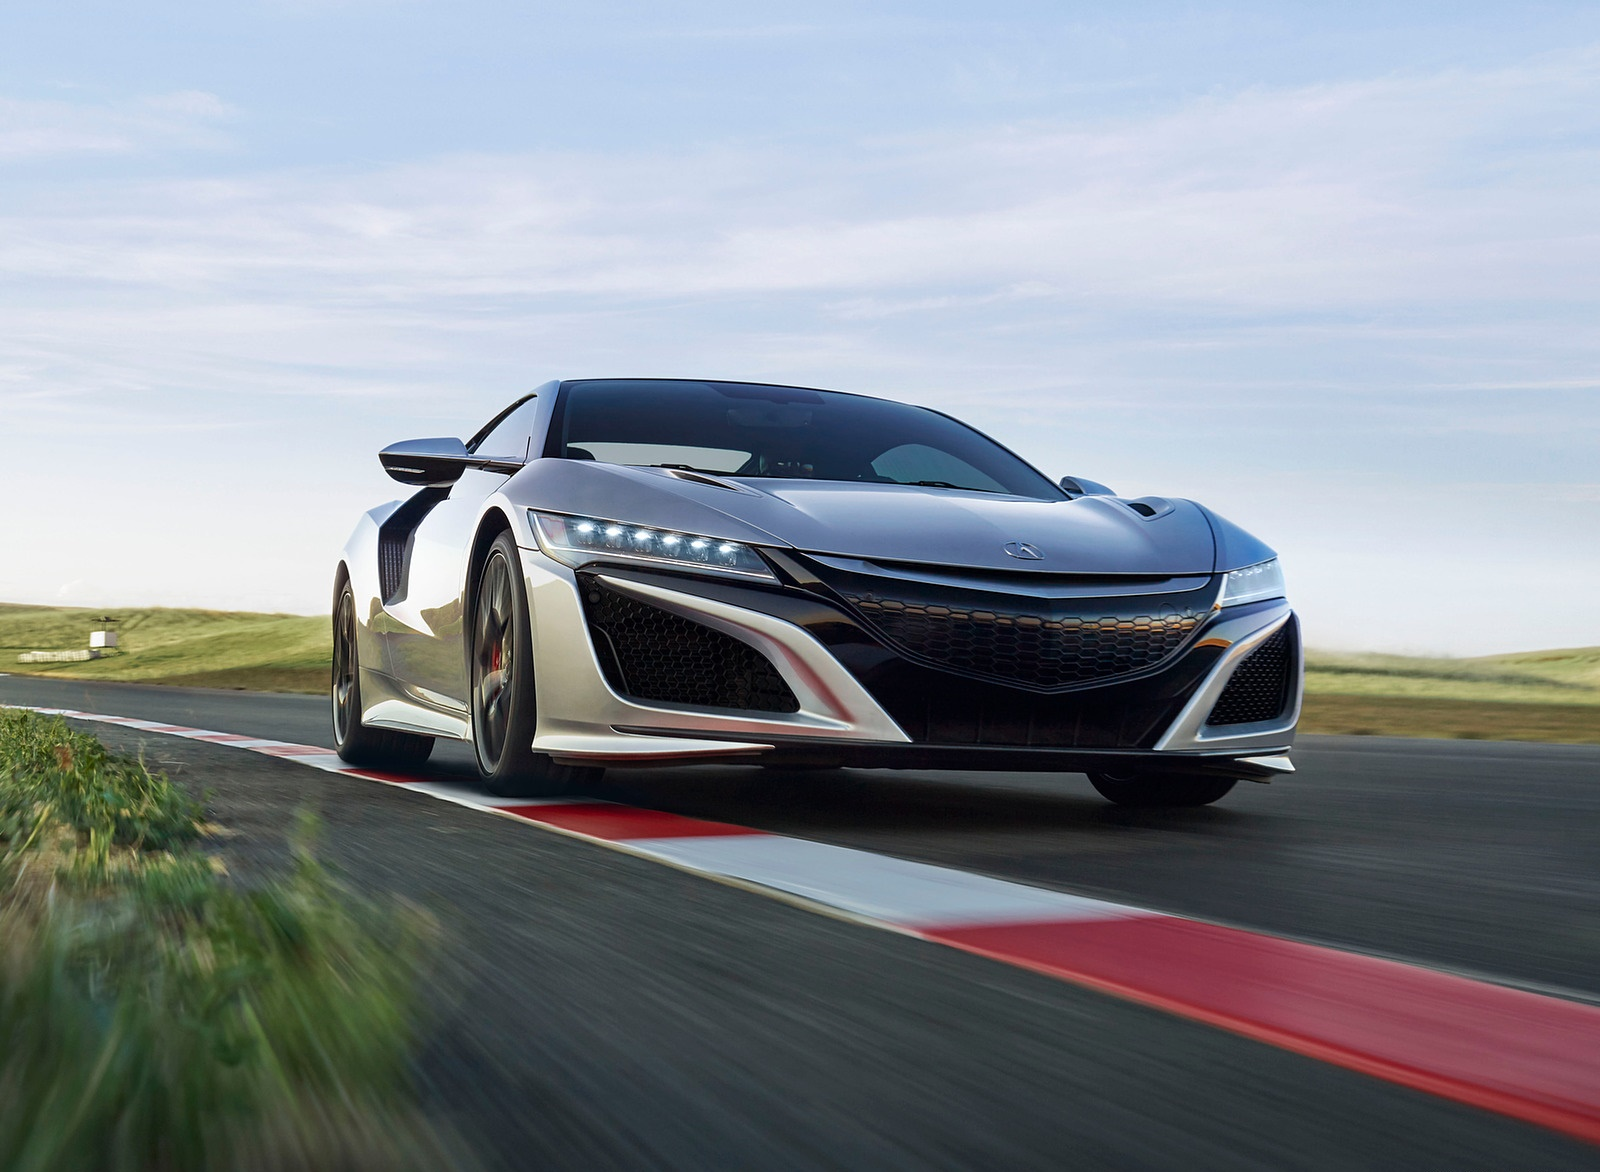 2019 Acura Nsx Wallpapers 41 Images Newcarcars